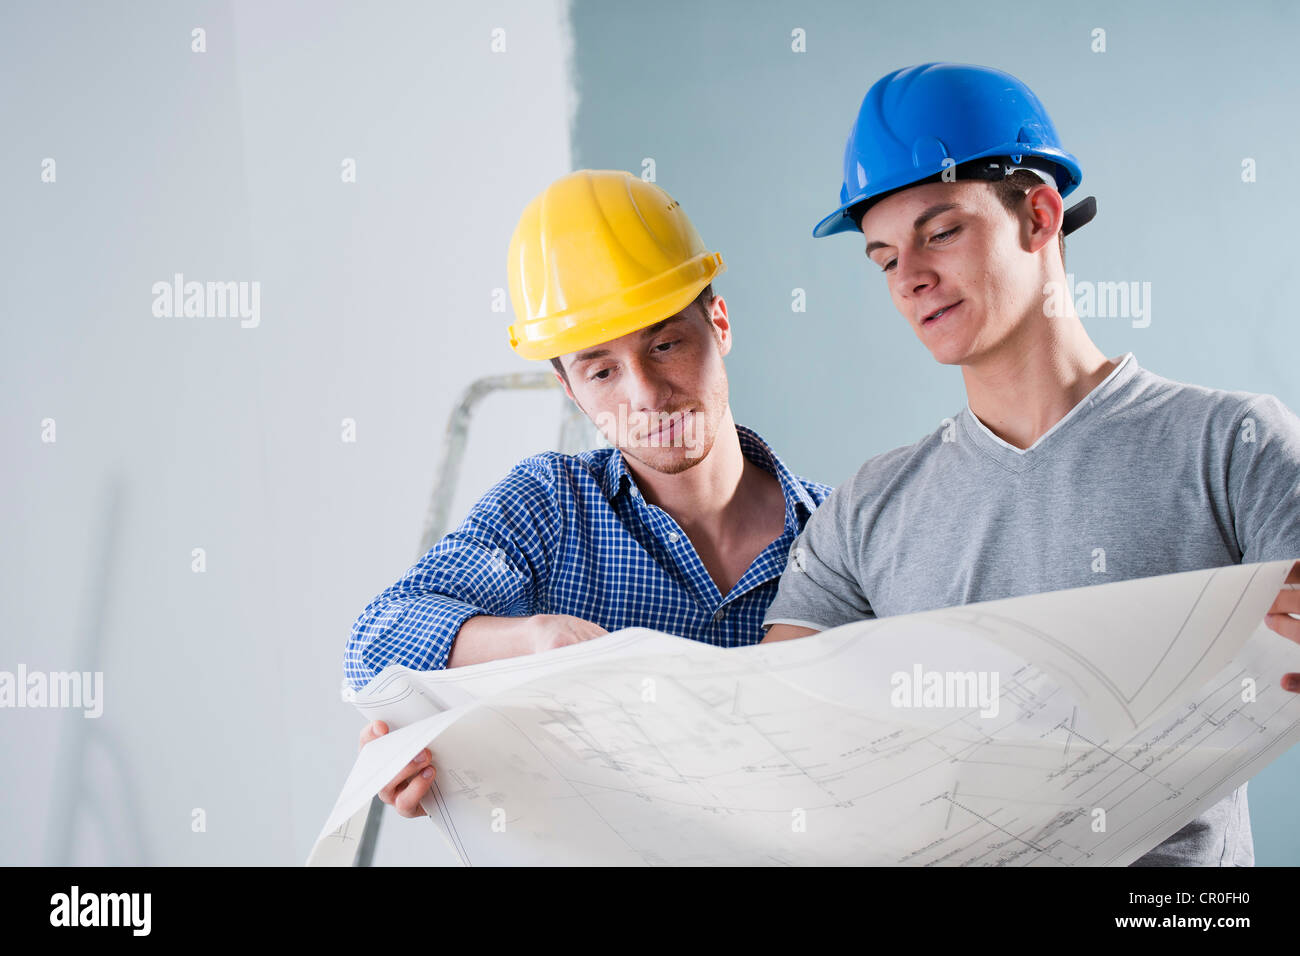 Two young tradesmen looking at a building plan - Stock Image